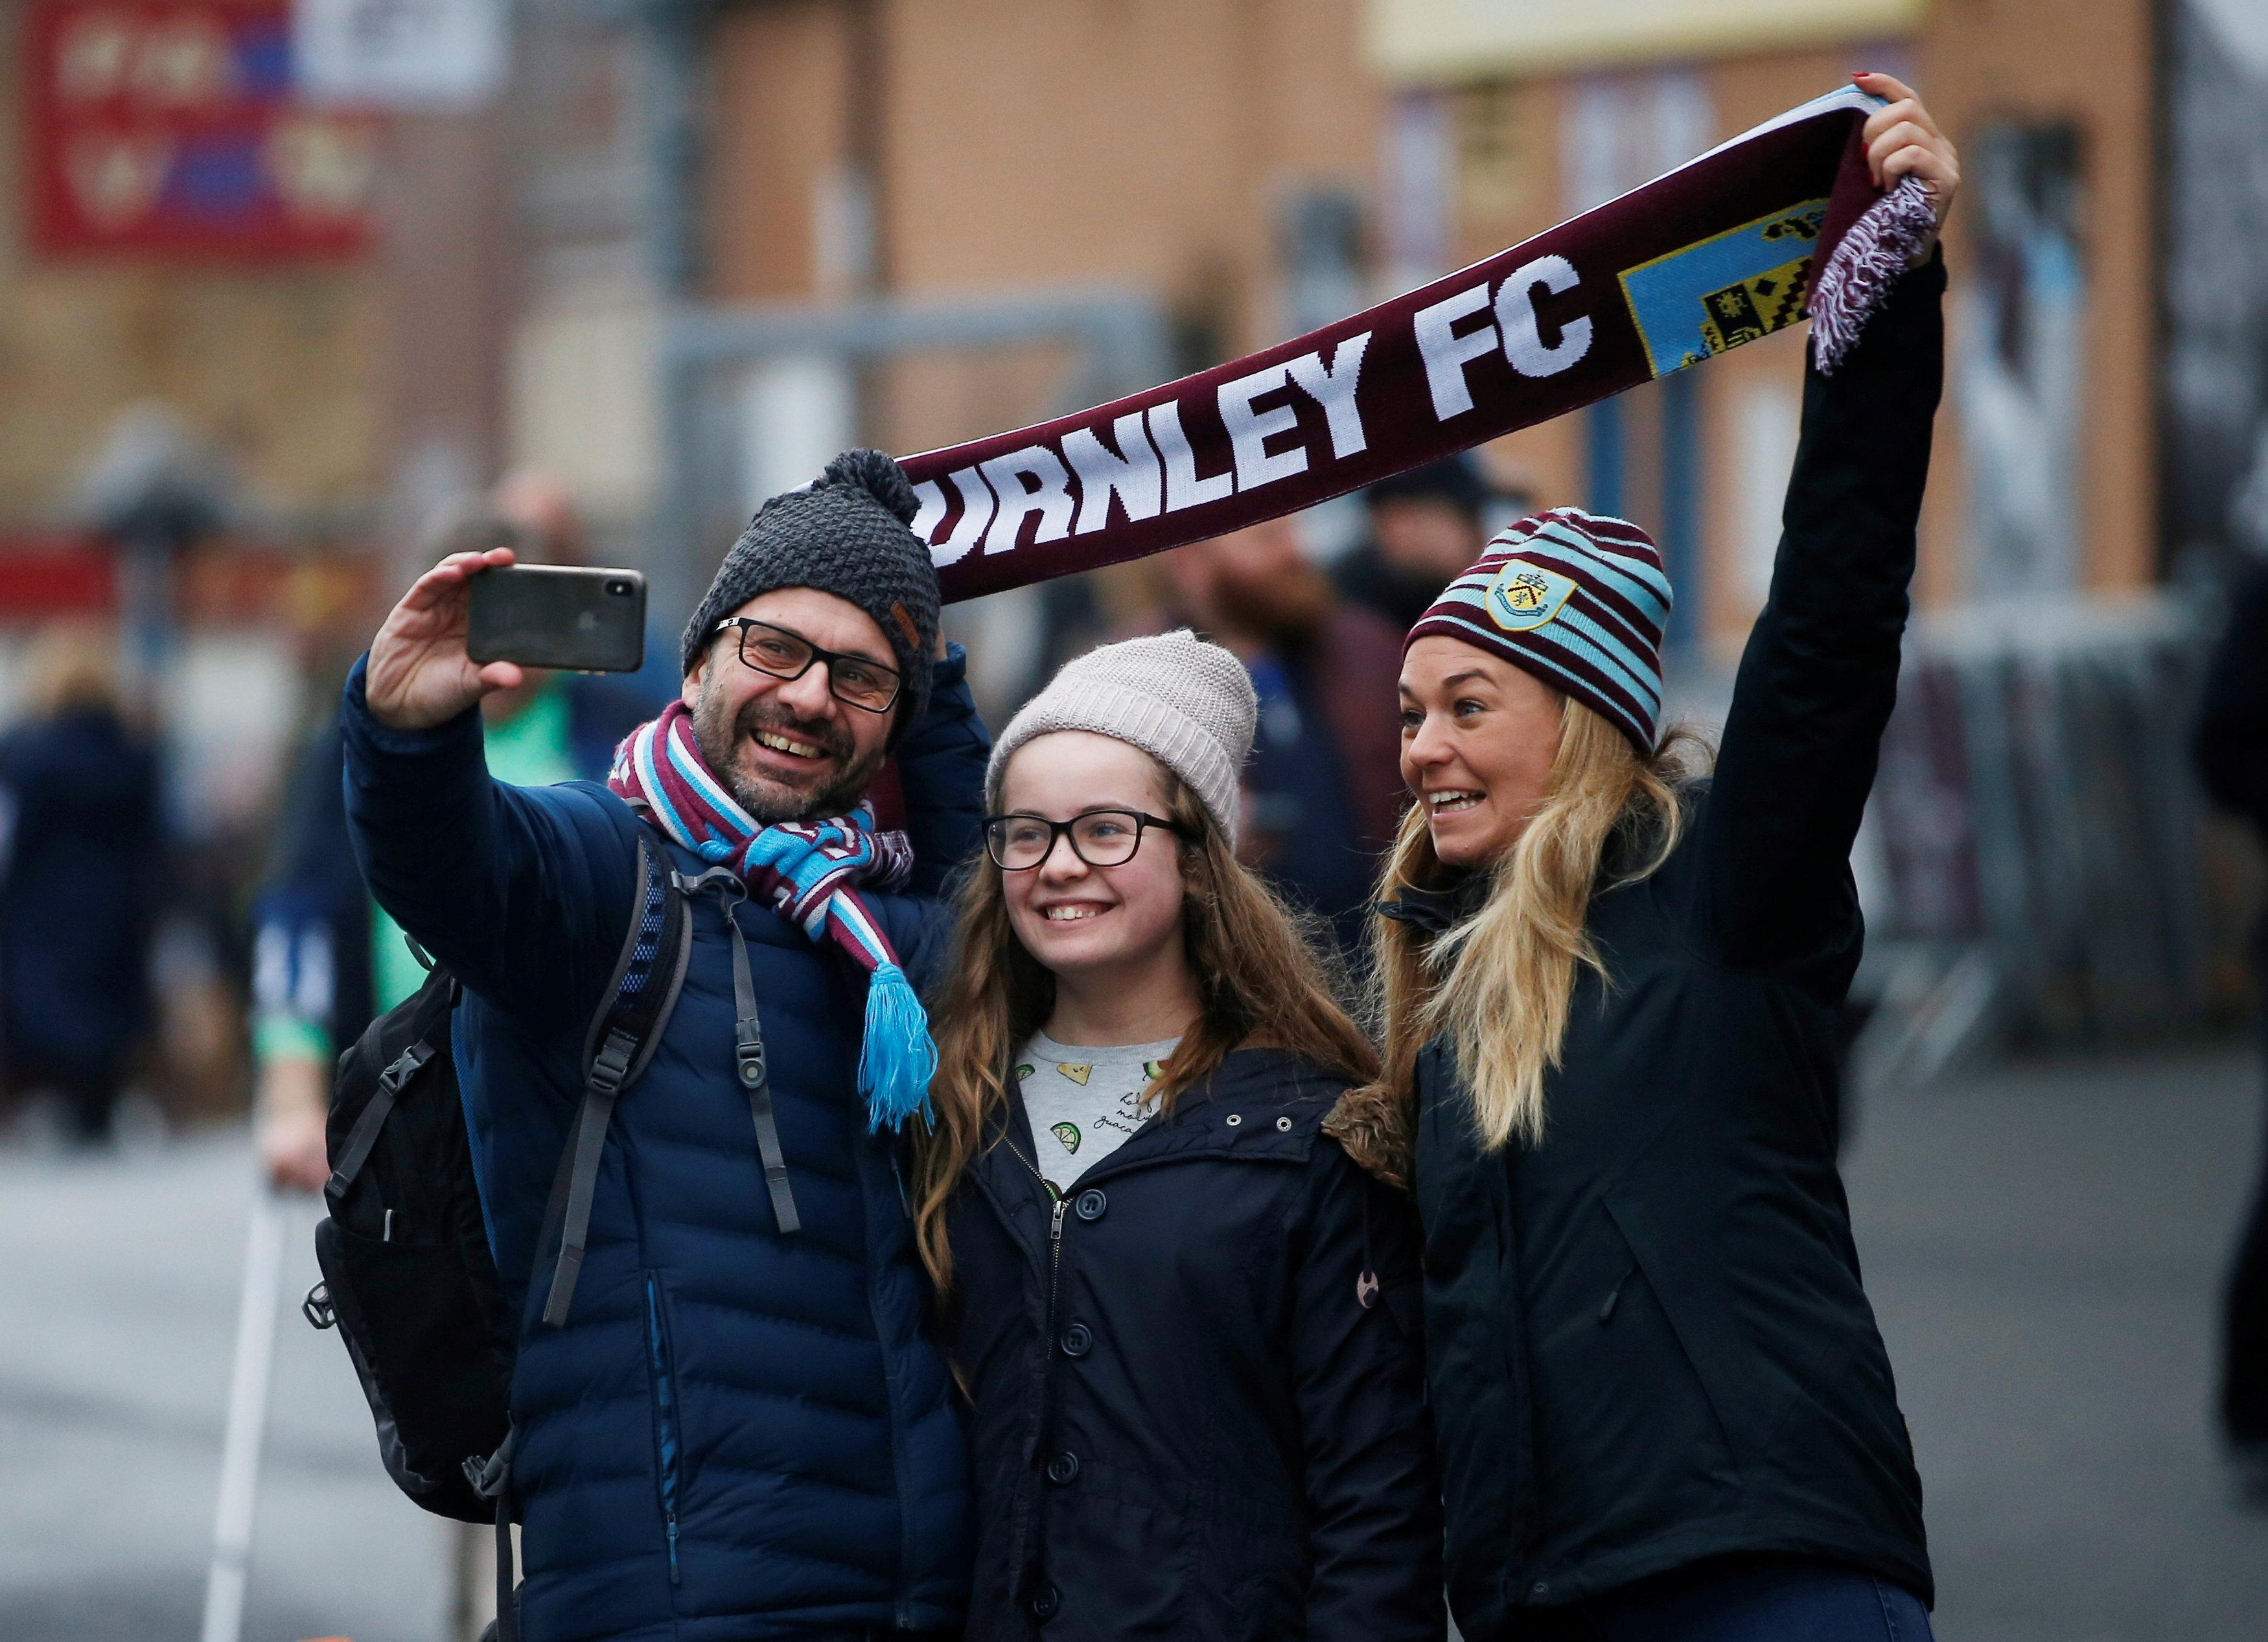 Burnley fans seems quietly content, despite their poor away from in recent seasons